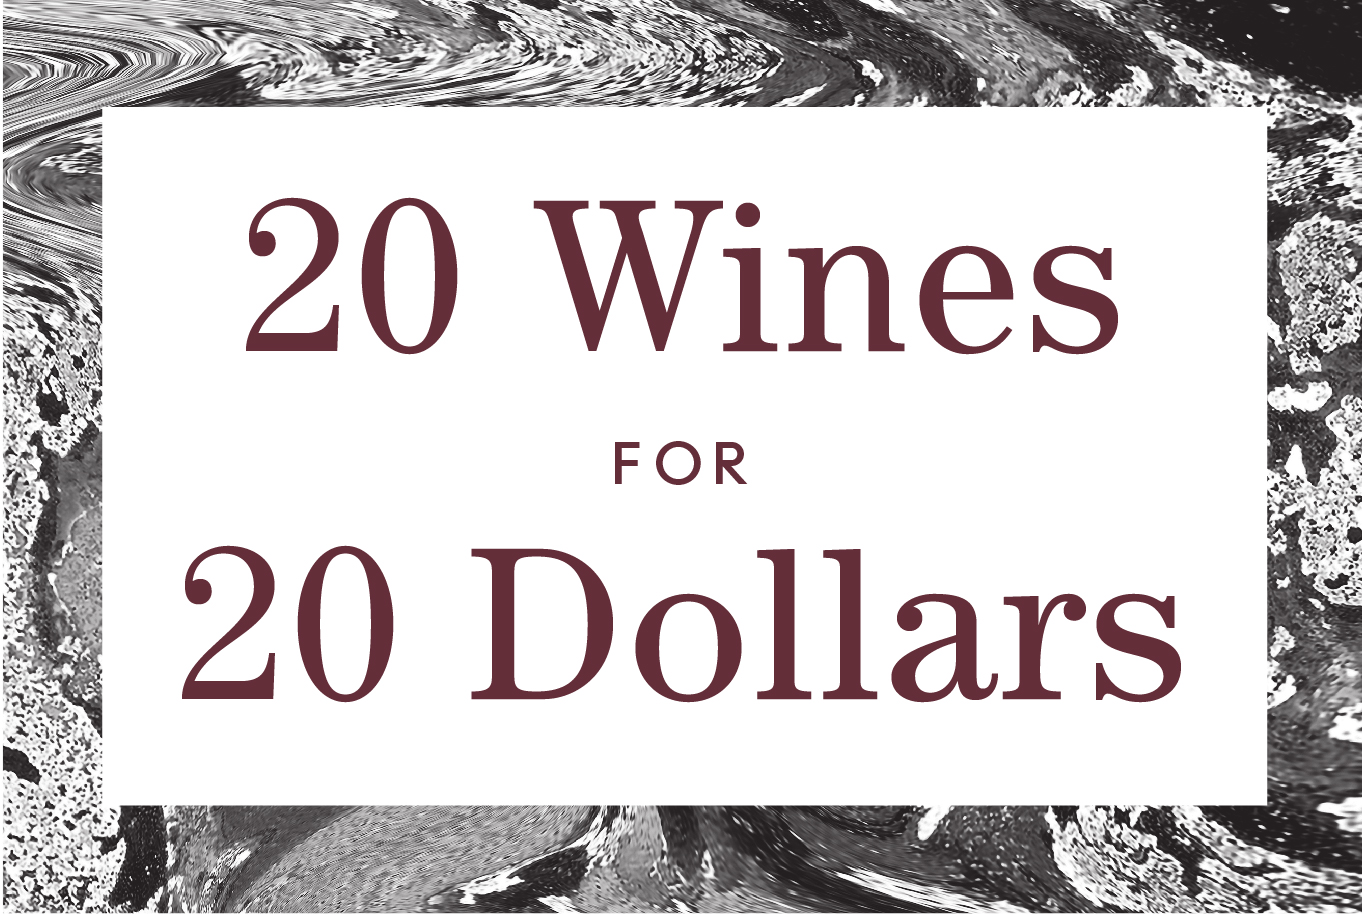 20 Wines for 20 Dollars